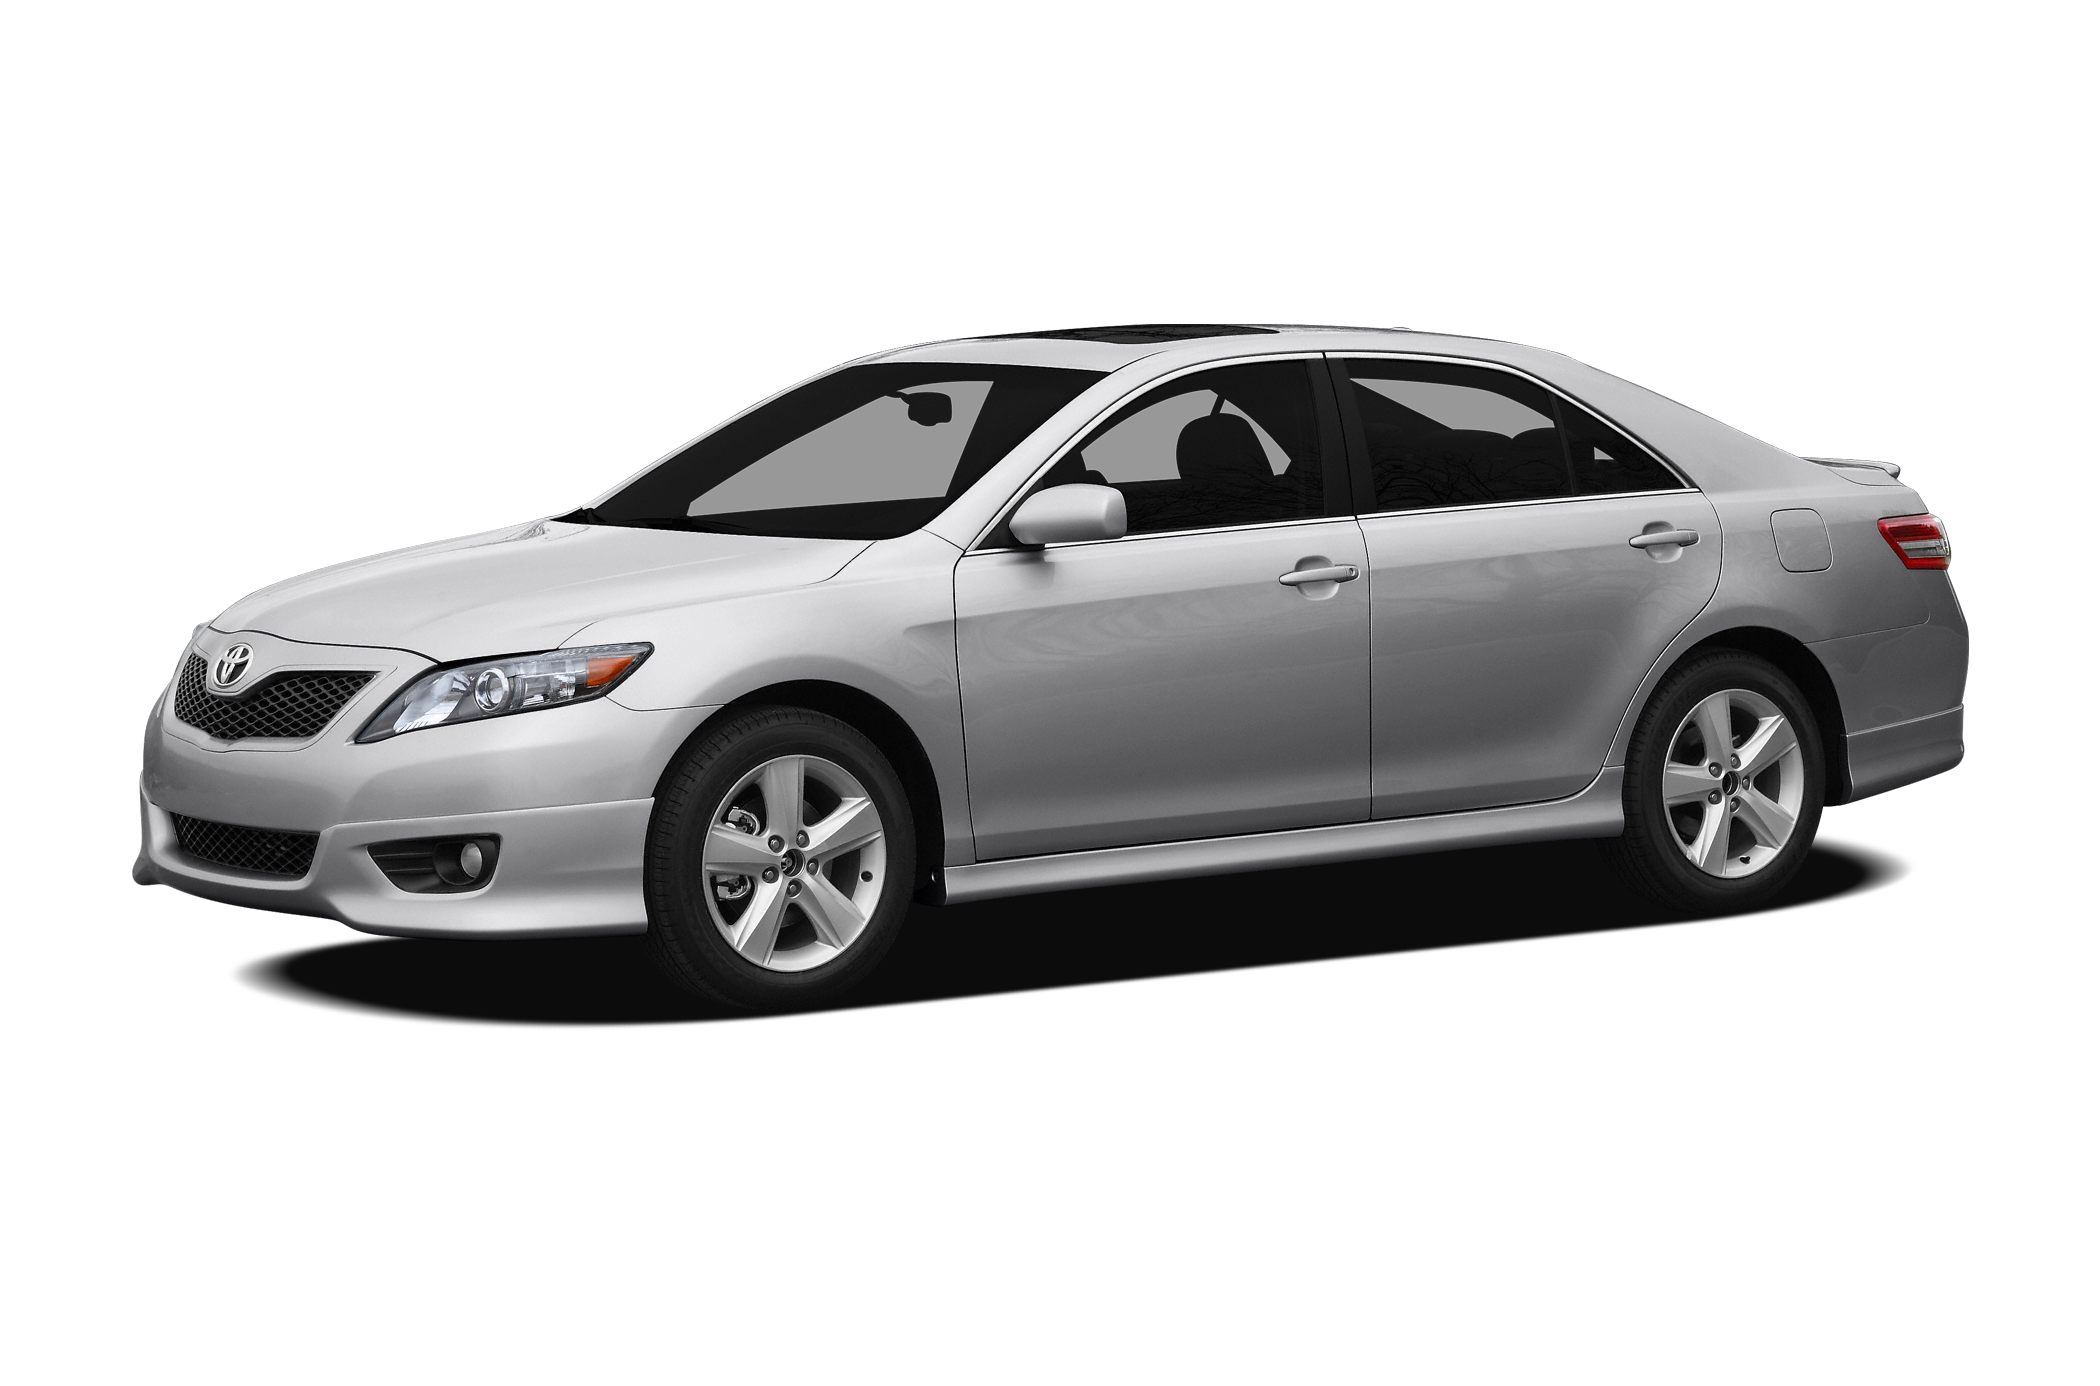 2011 Toyota Camry SE Sedan for sale in Rochester for $15,446 with 84,799 miles